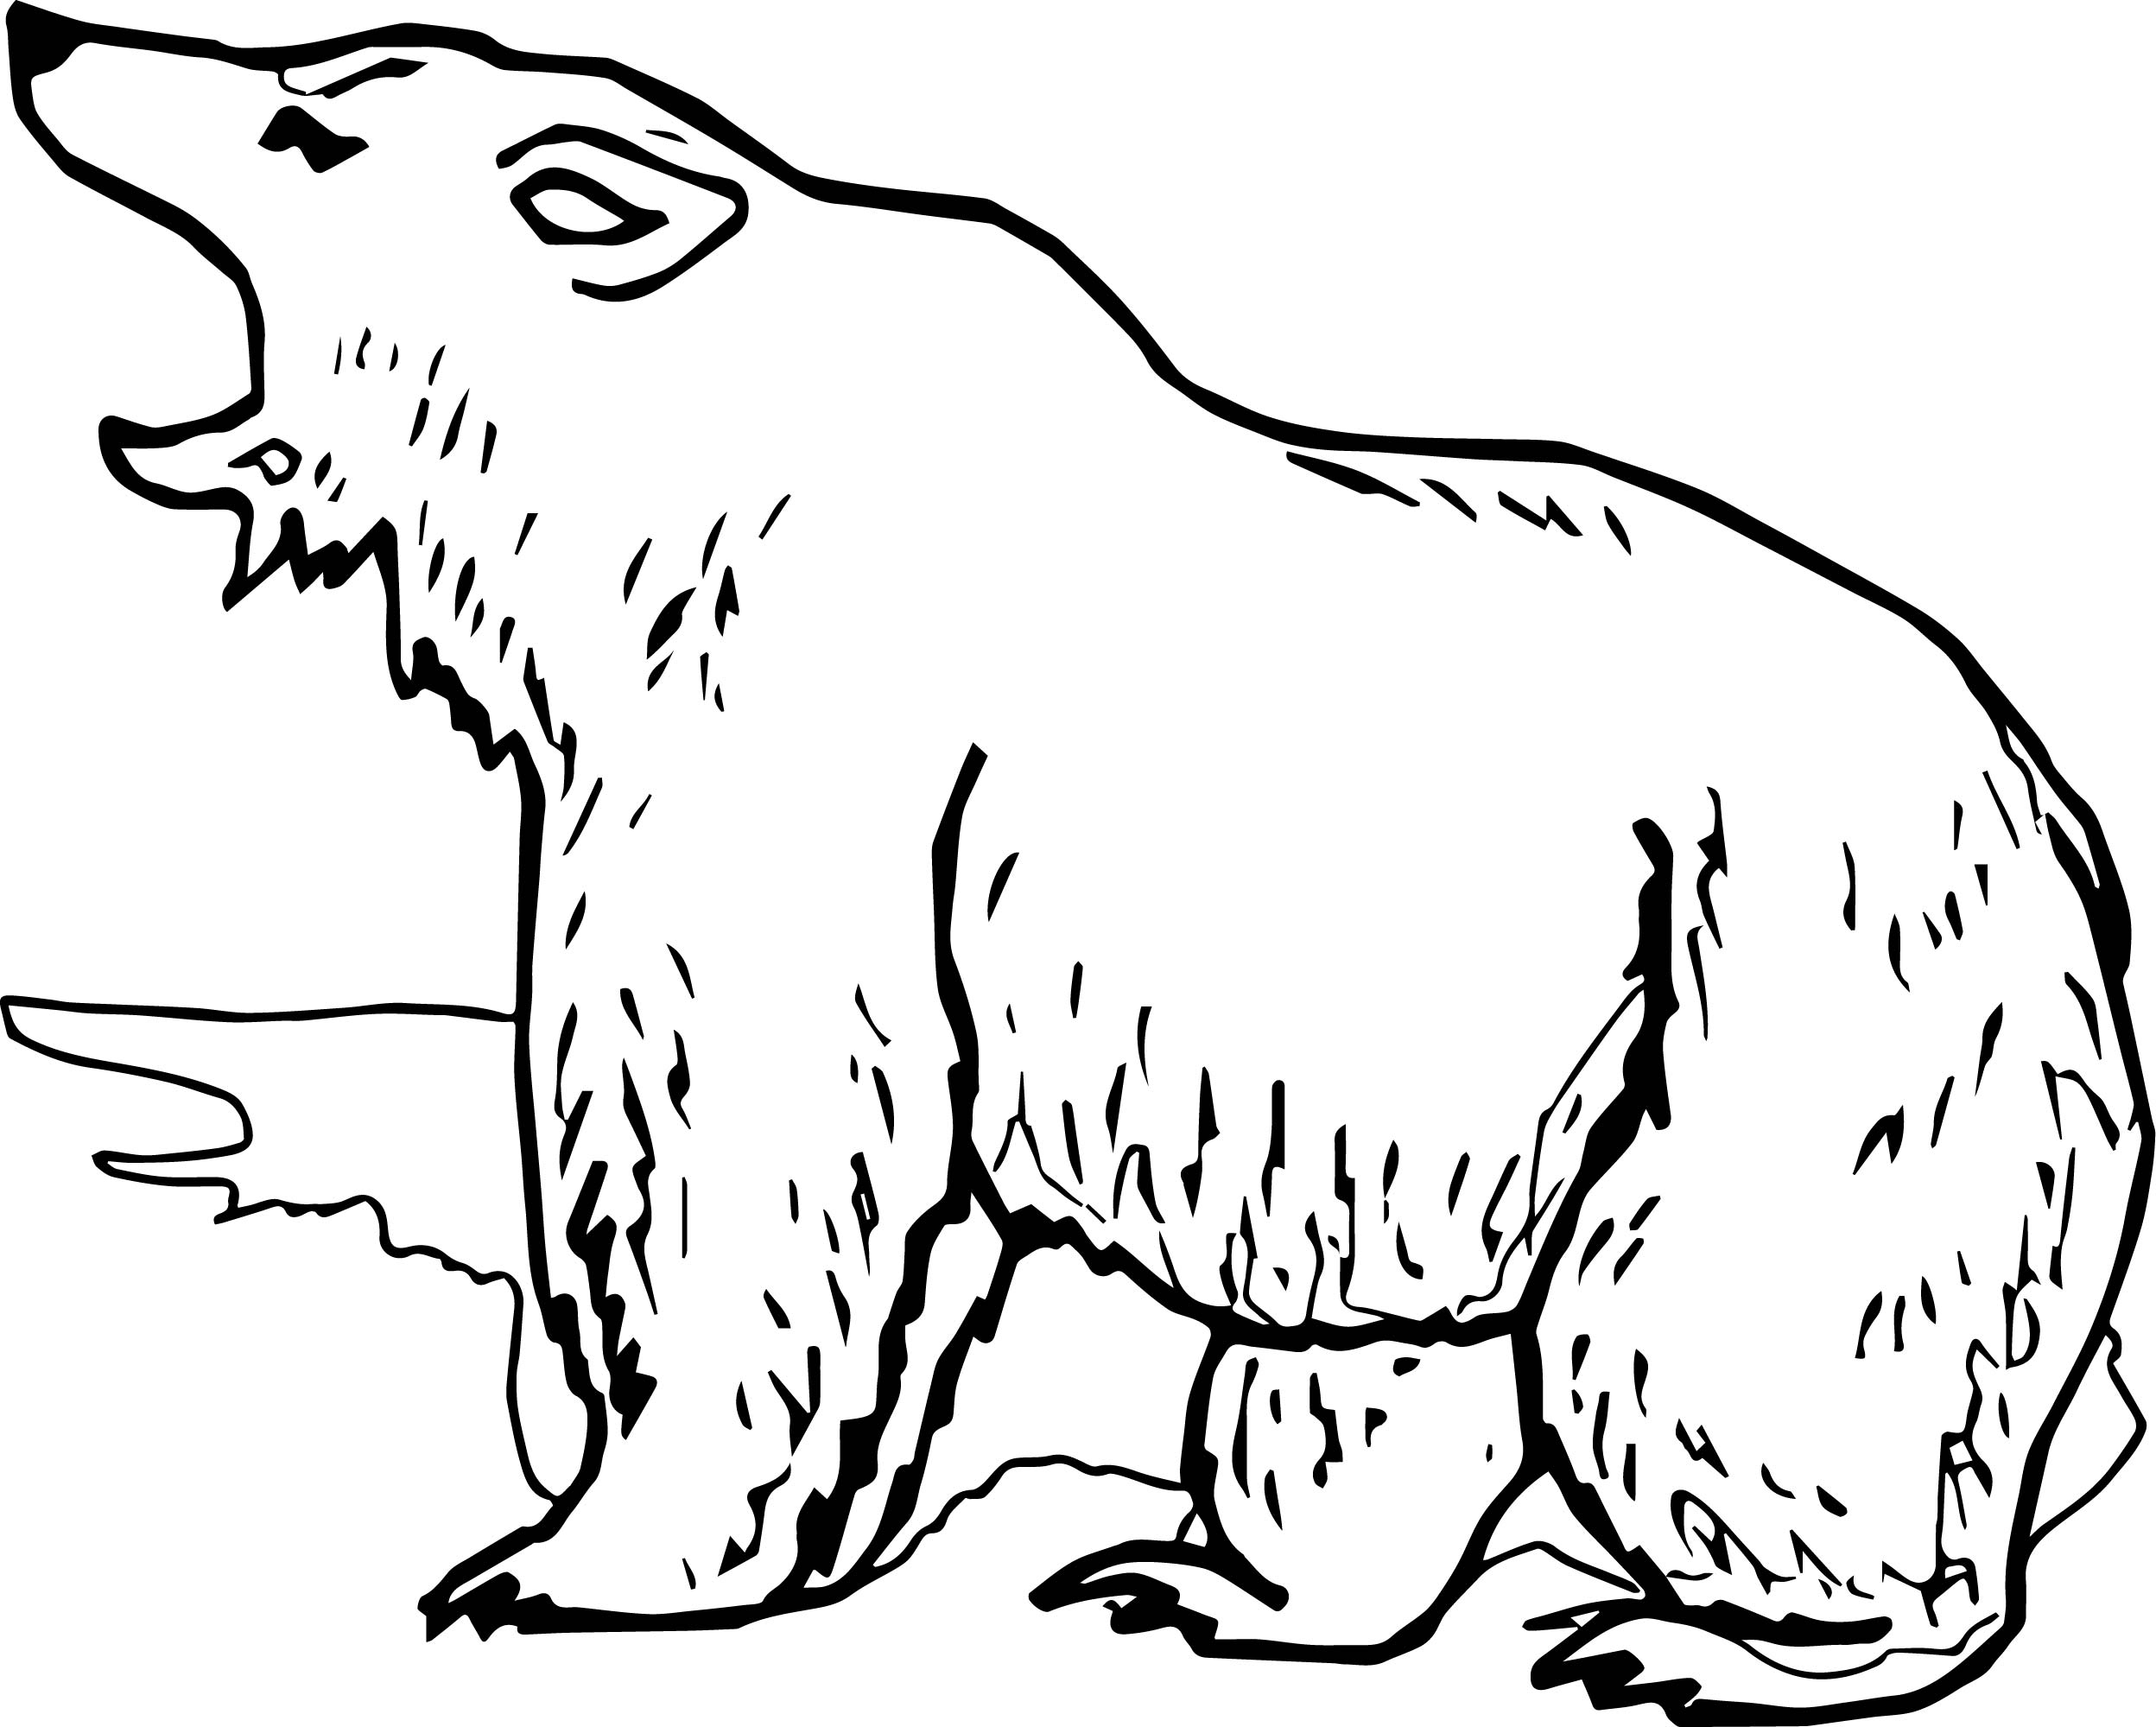 grizzly bear coloring page - grizzly bear yell coloring page